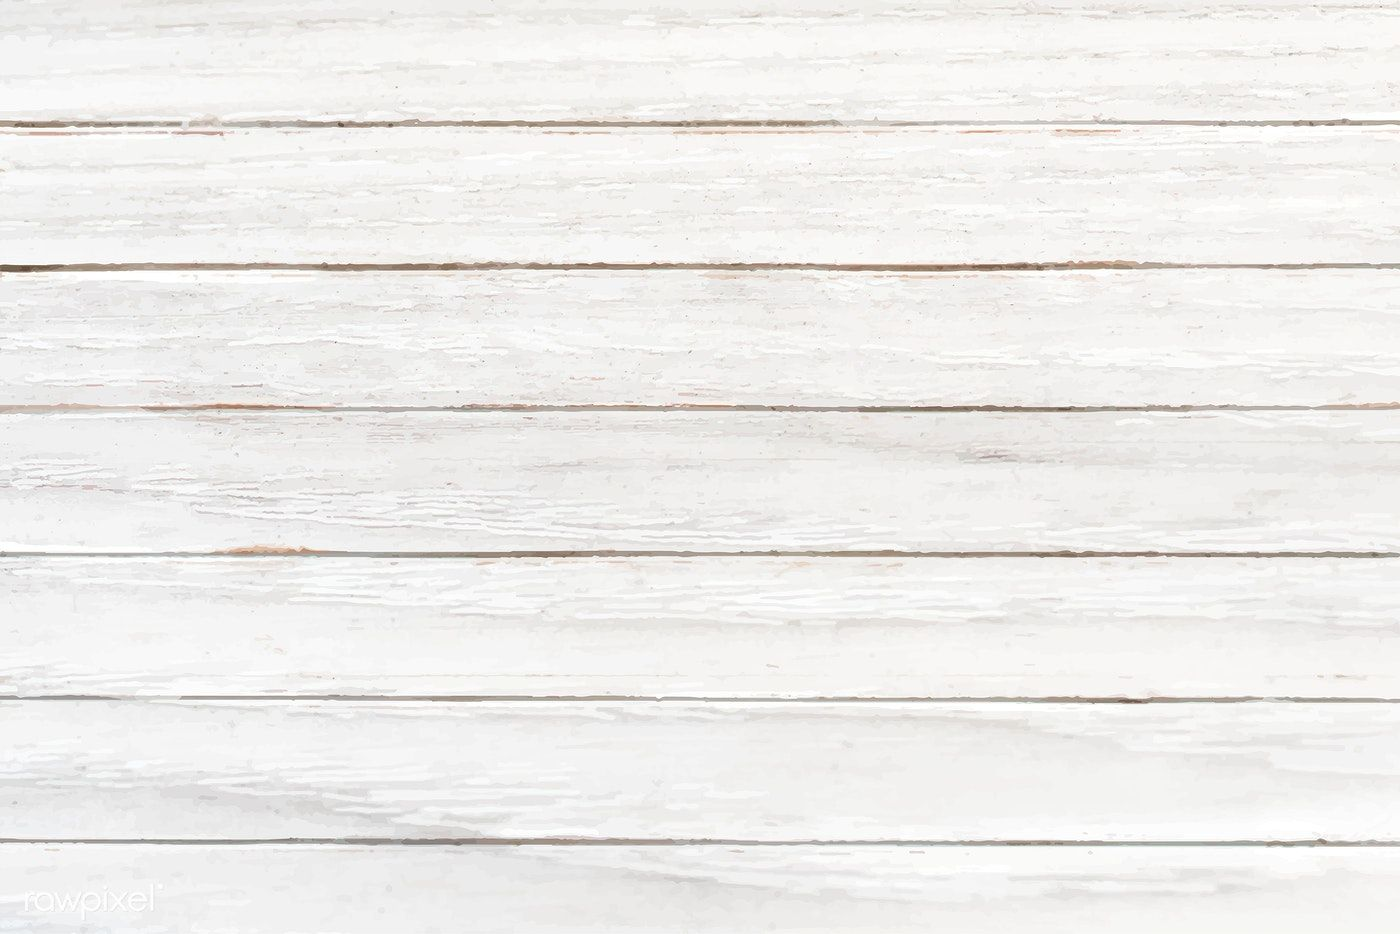 Plain White Wooden Plank Textured Background Vector Free Image By Rawpixel Com Aom Woraluck Textured Background Wood Texture Background White Wood Texture